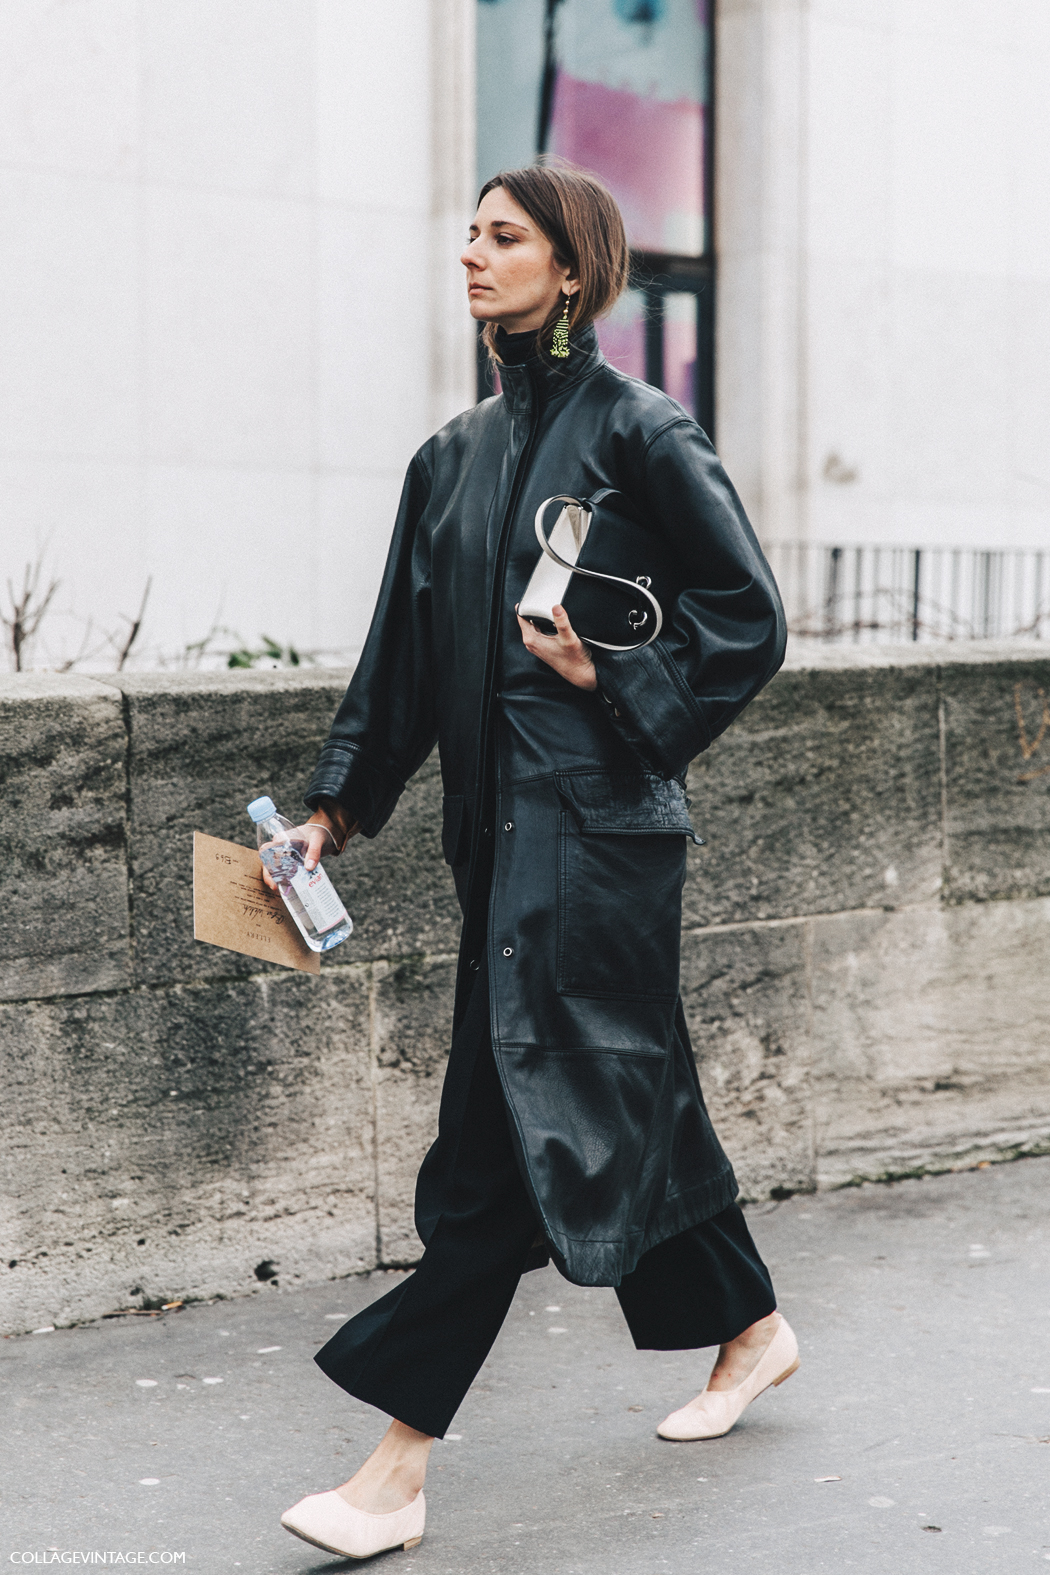 PFW-Paris_Fashion_Week_Fall_2016-Street_Style-Collage_Vintage-Leather-BLack-Brie_Welch-